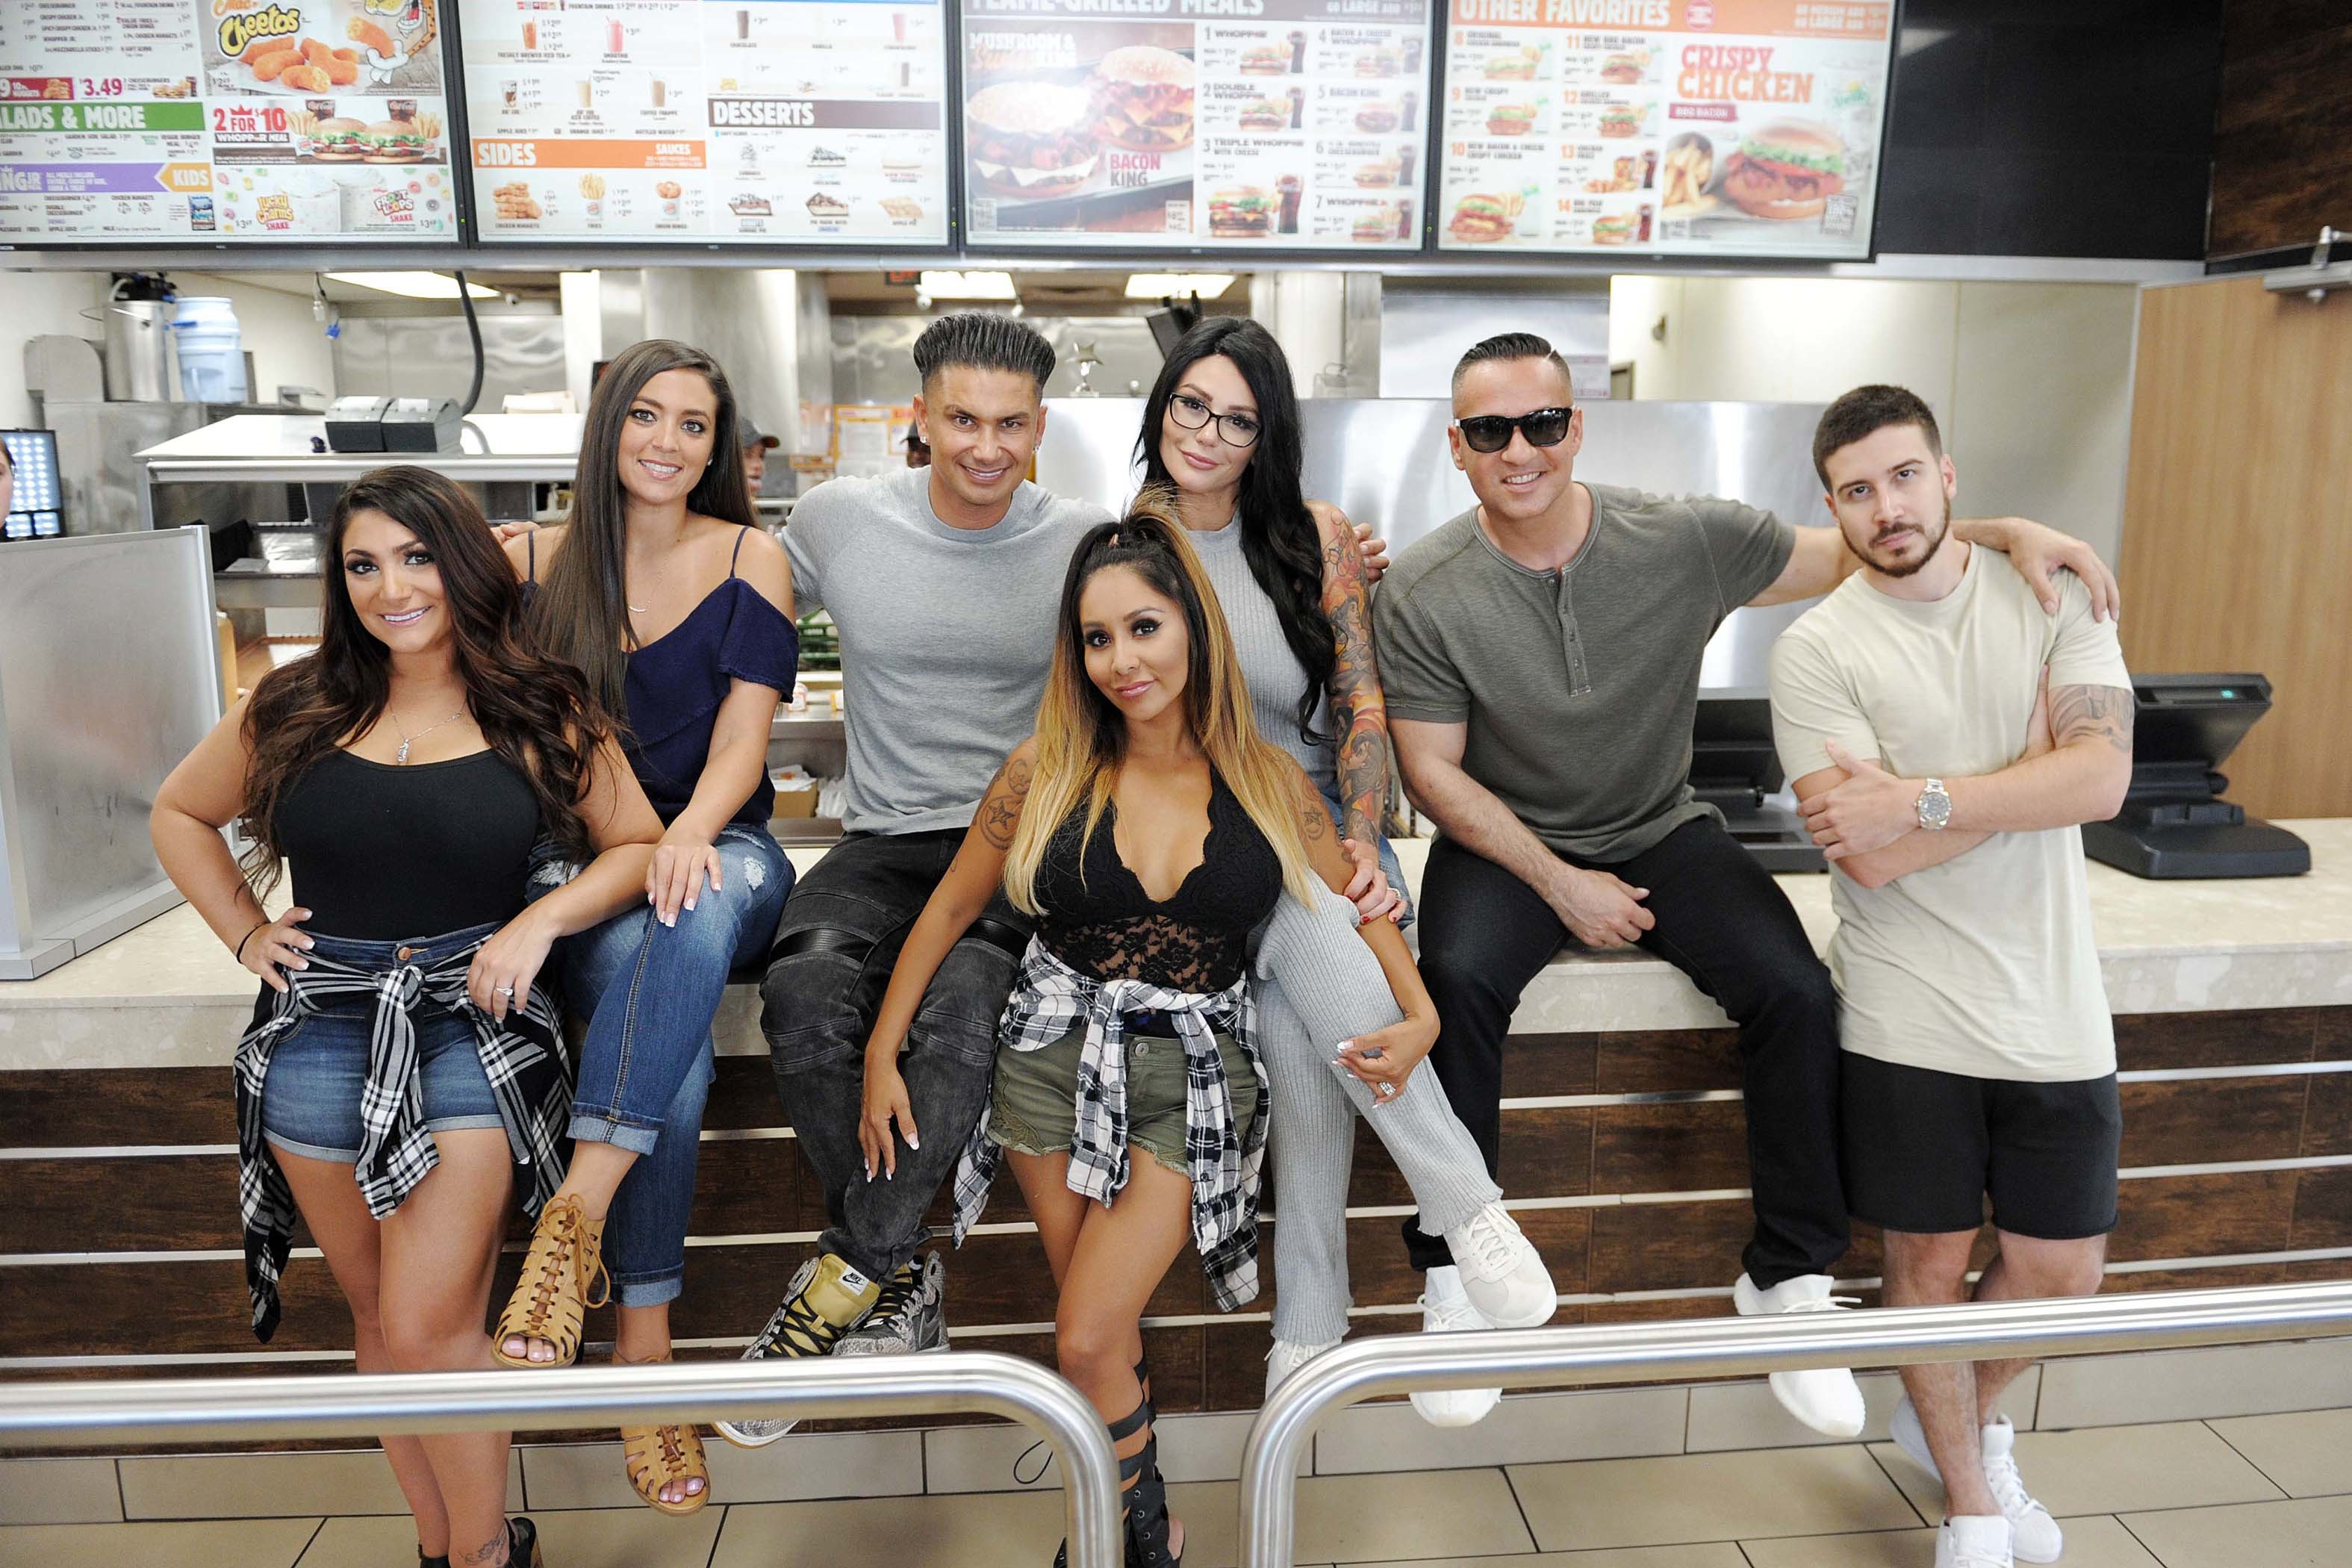 Mike Sorrentino, Nicole Polizzi, Pauly Delvecchio, Jenni Farley, Deena Cortese, Vinny Guadagnino and Sammi Giancola try the new Chicken Parmesan Sandwich at Burger King on July 11, 2017.